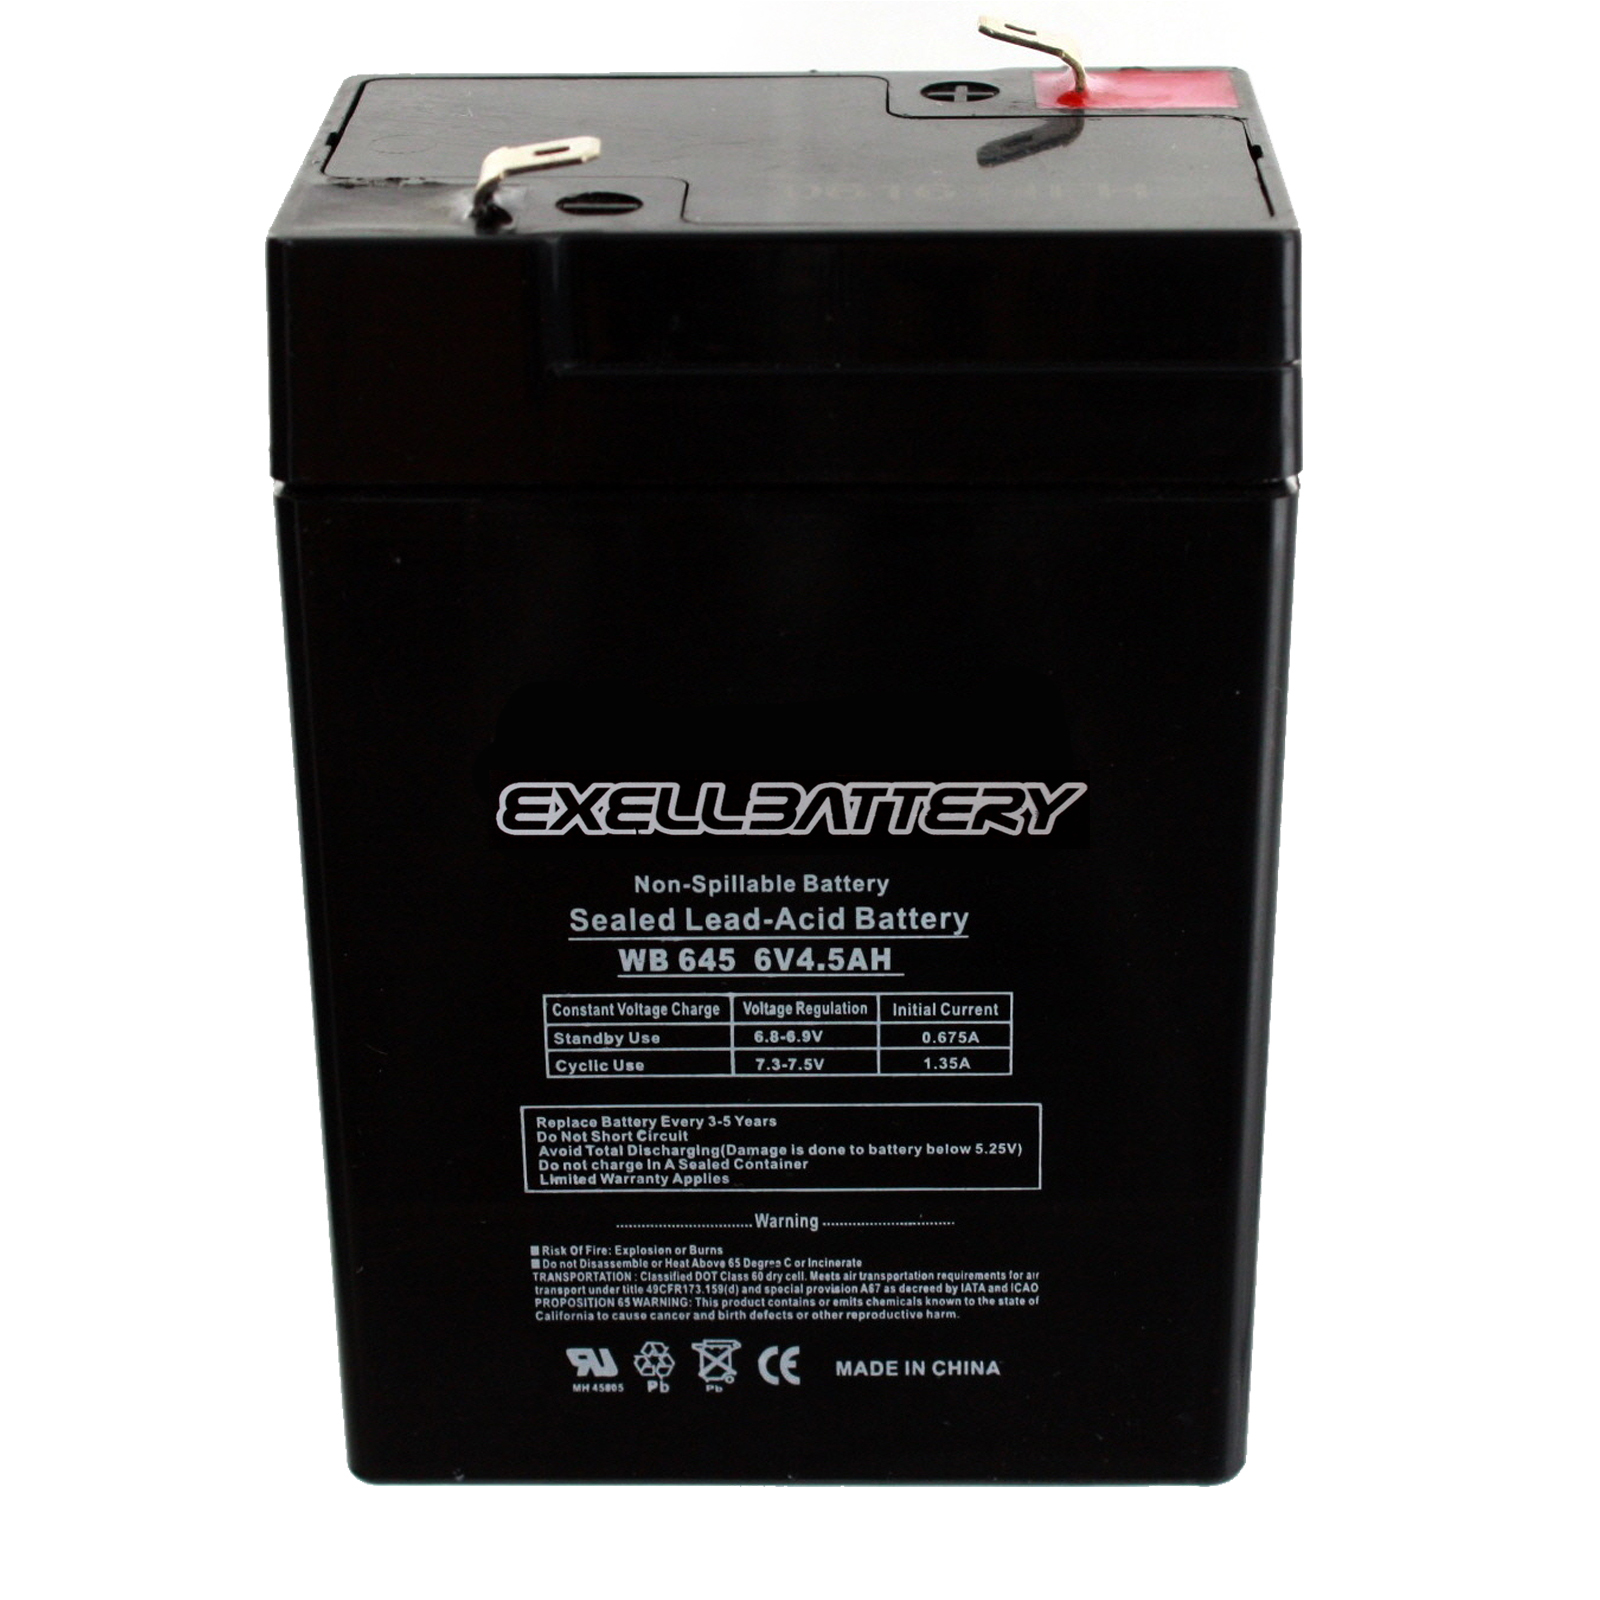 6 Pack Brand Product Mighty Max Battery ML4-6 6V 4.5AH Replaces APC 200DL Battery